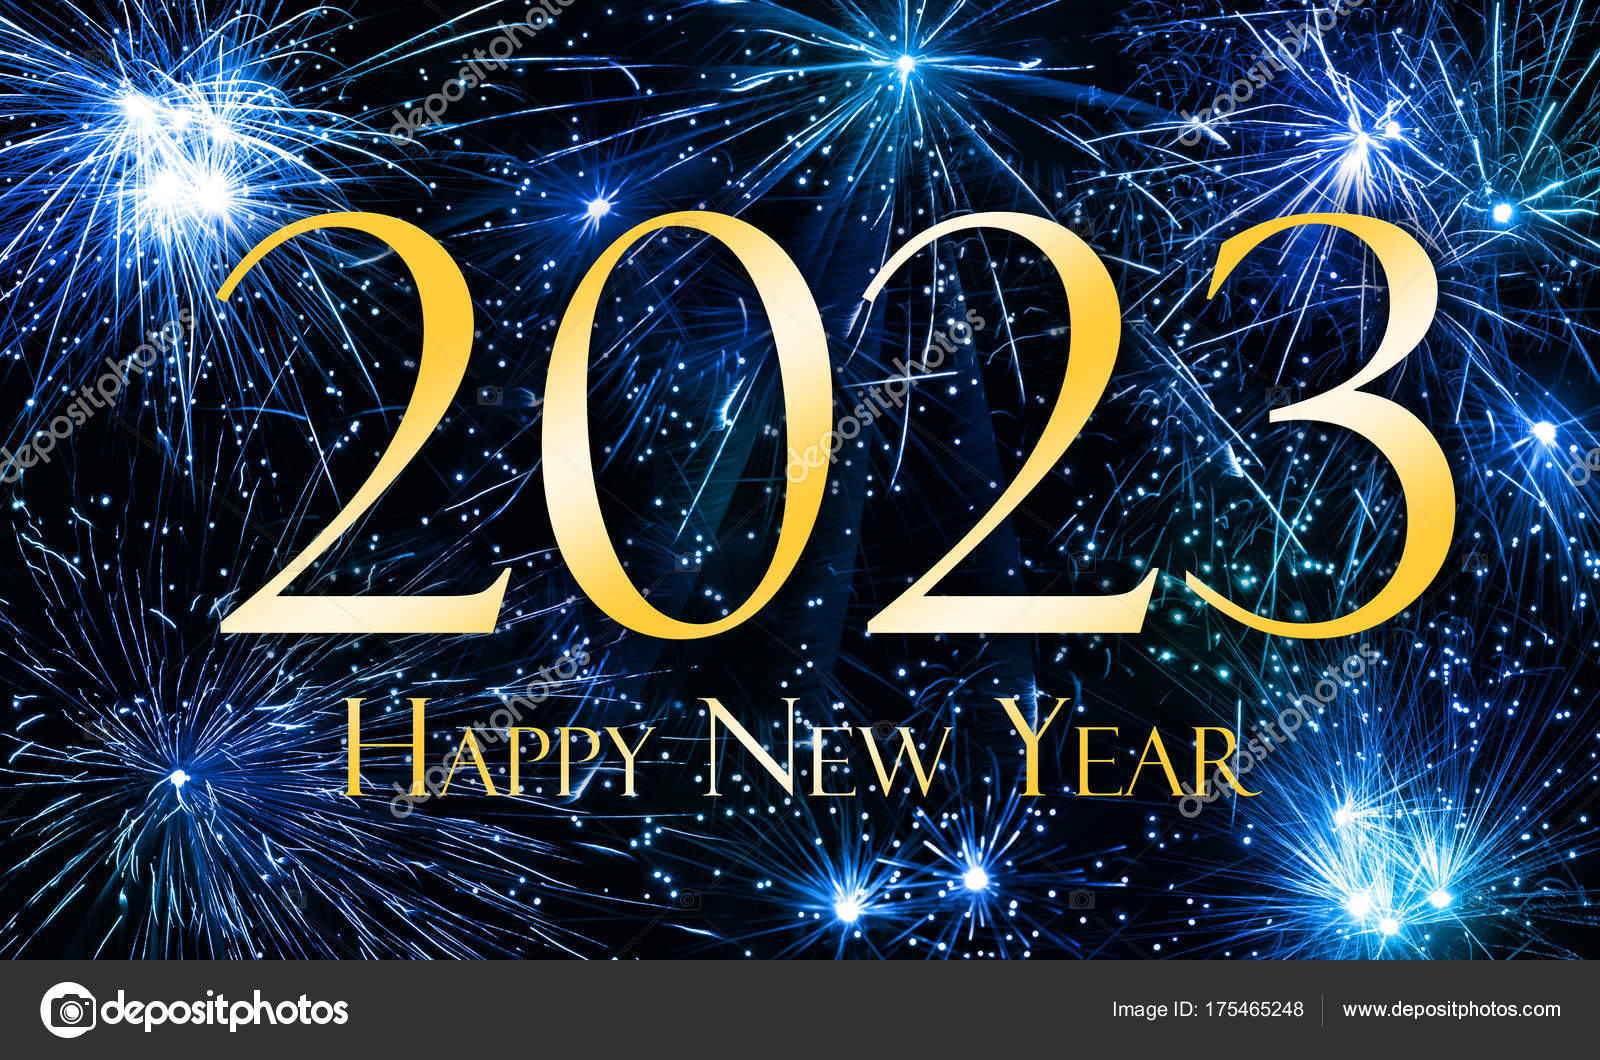 Happy New Year 2023 — Stock Photo